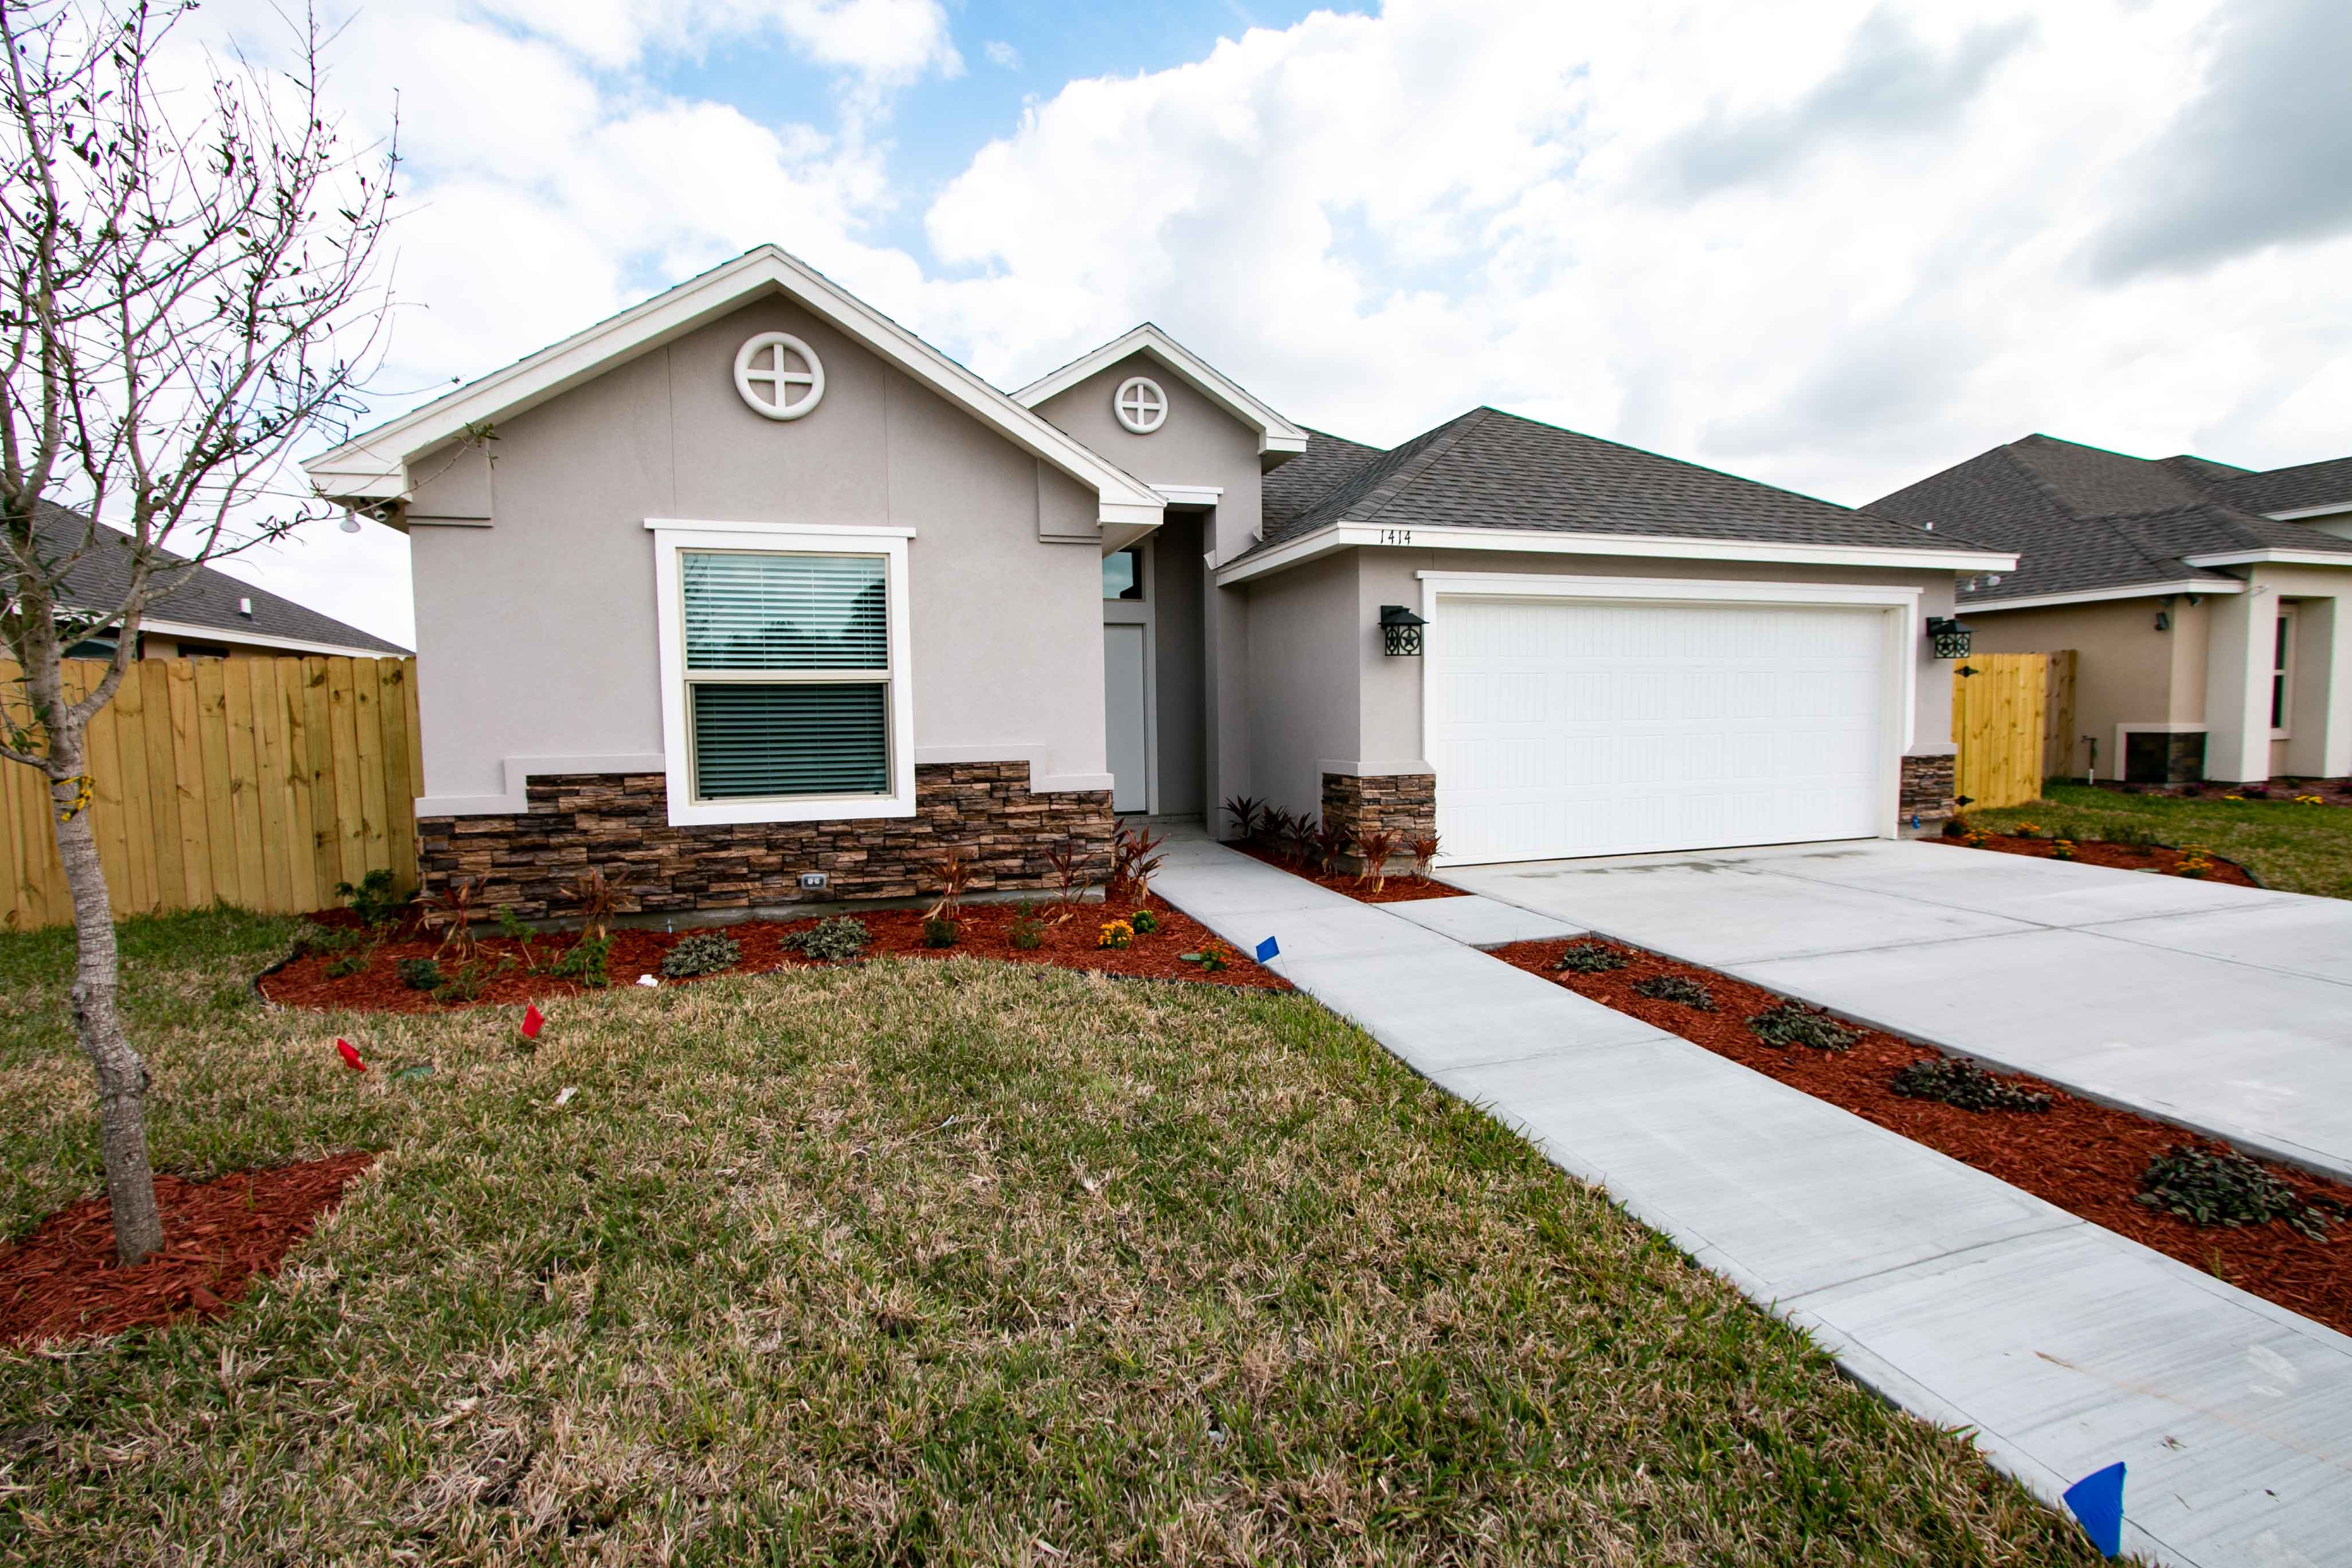 Camino Real Builders, New homes for sale in Mcallen, Edinburg and